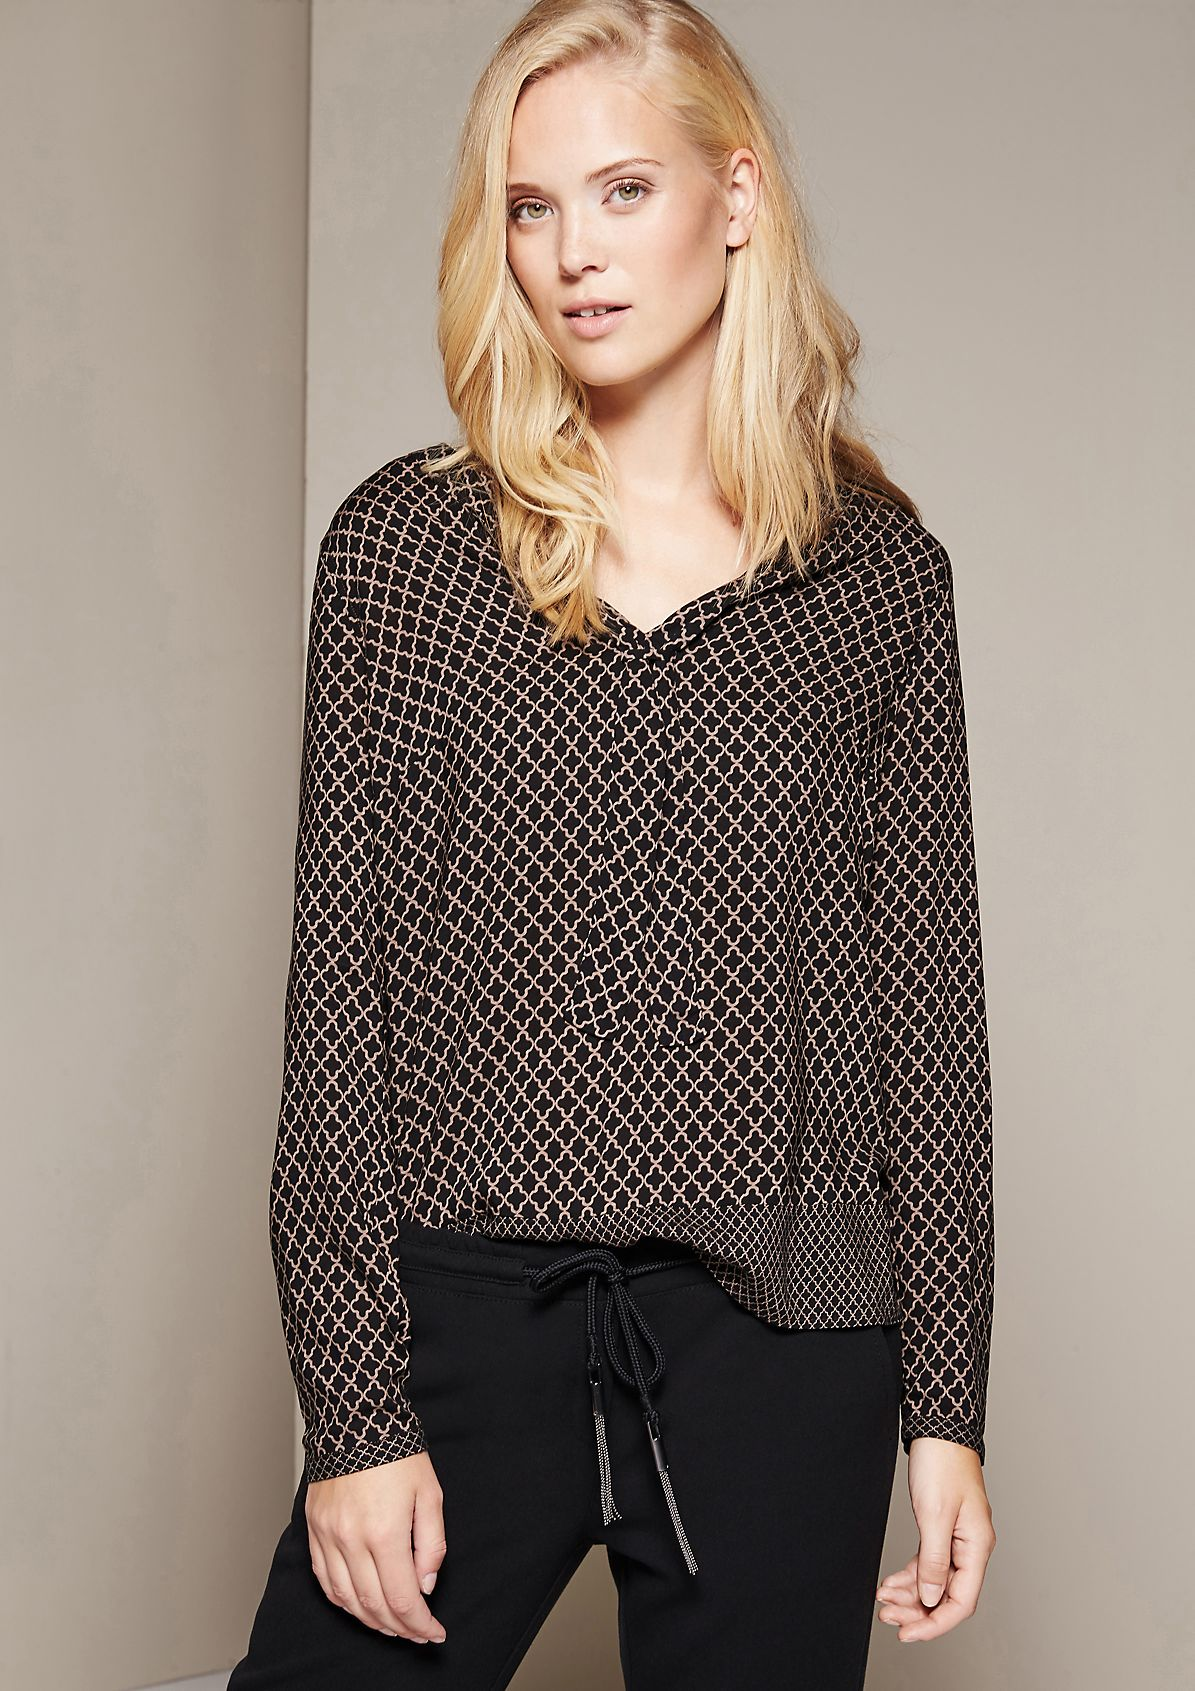 Elegant blouse with a fine pattern from s.Oliver